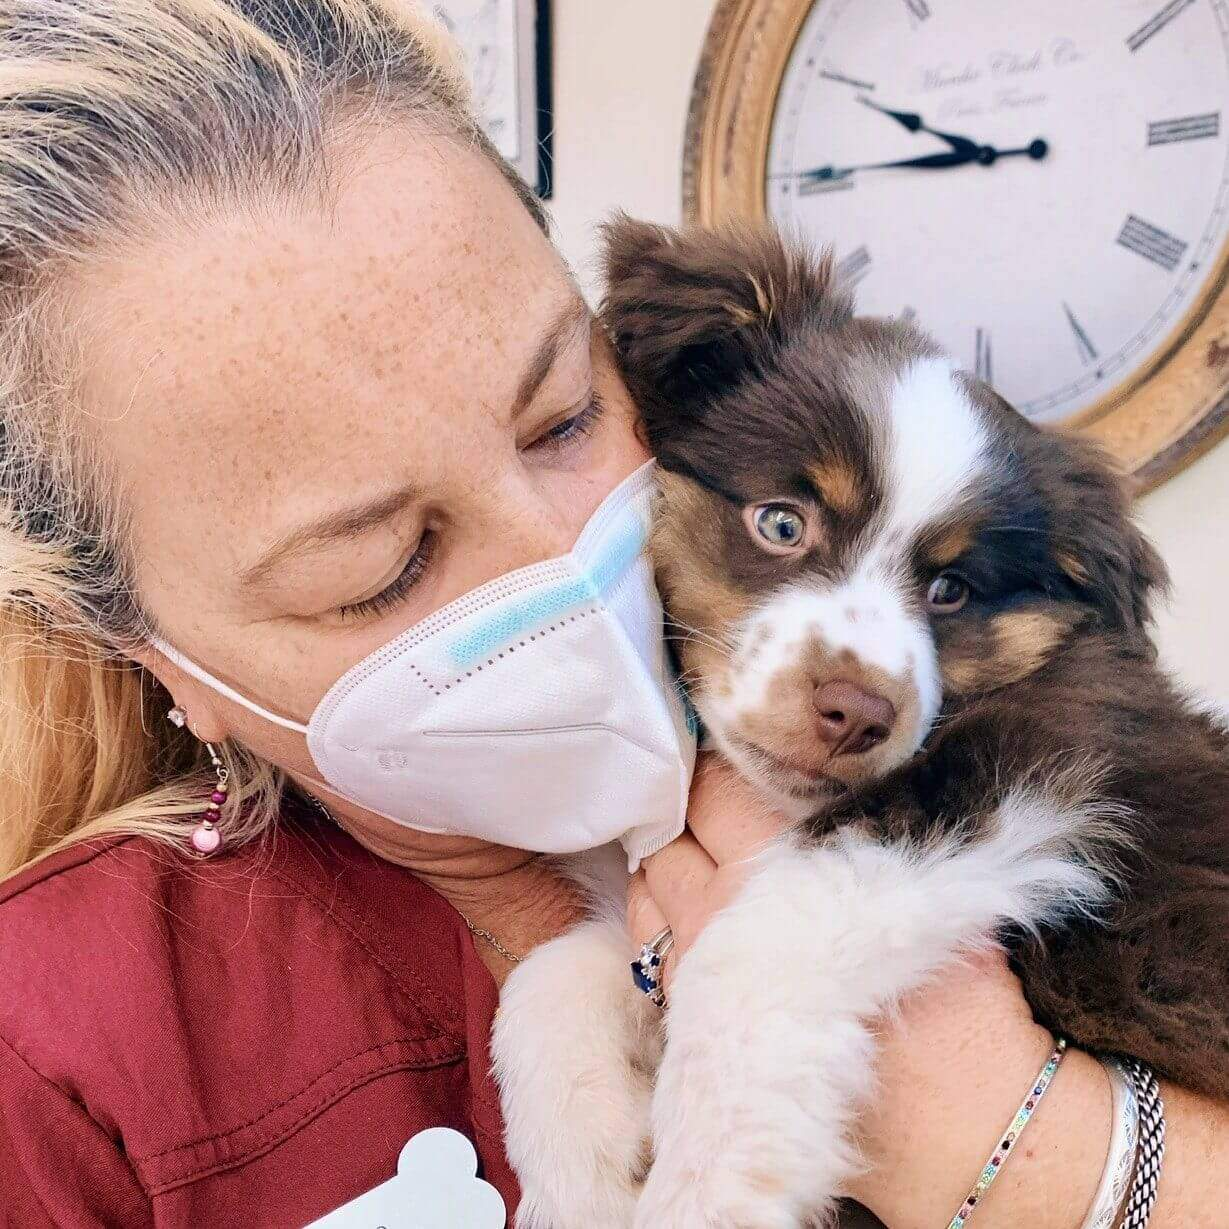 Vet Tech with Puppy